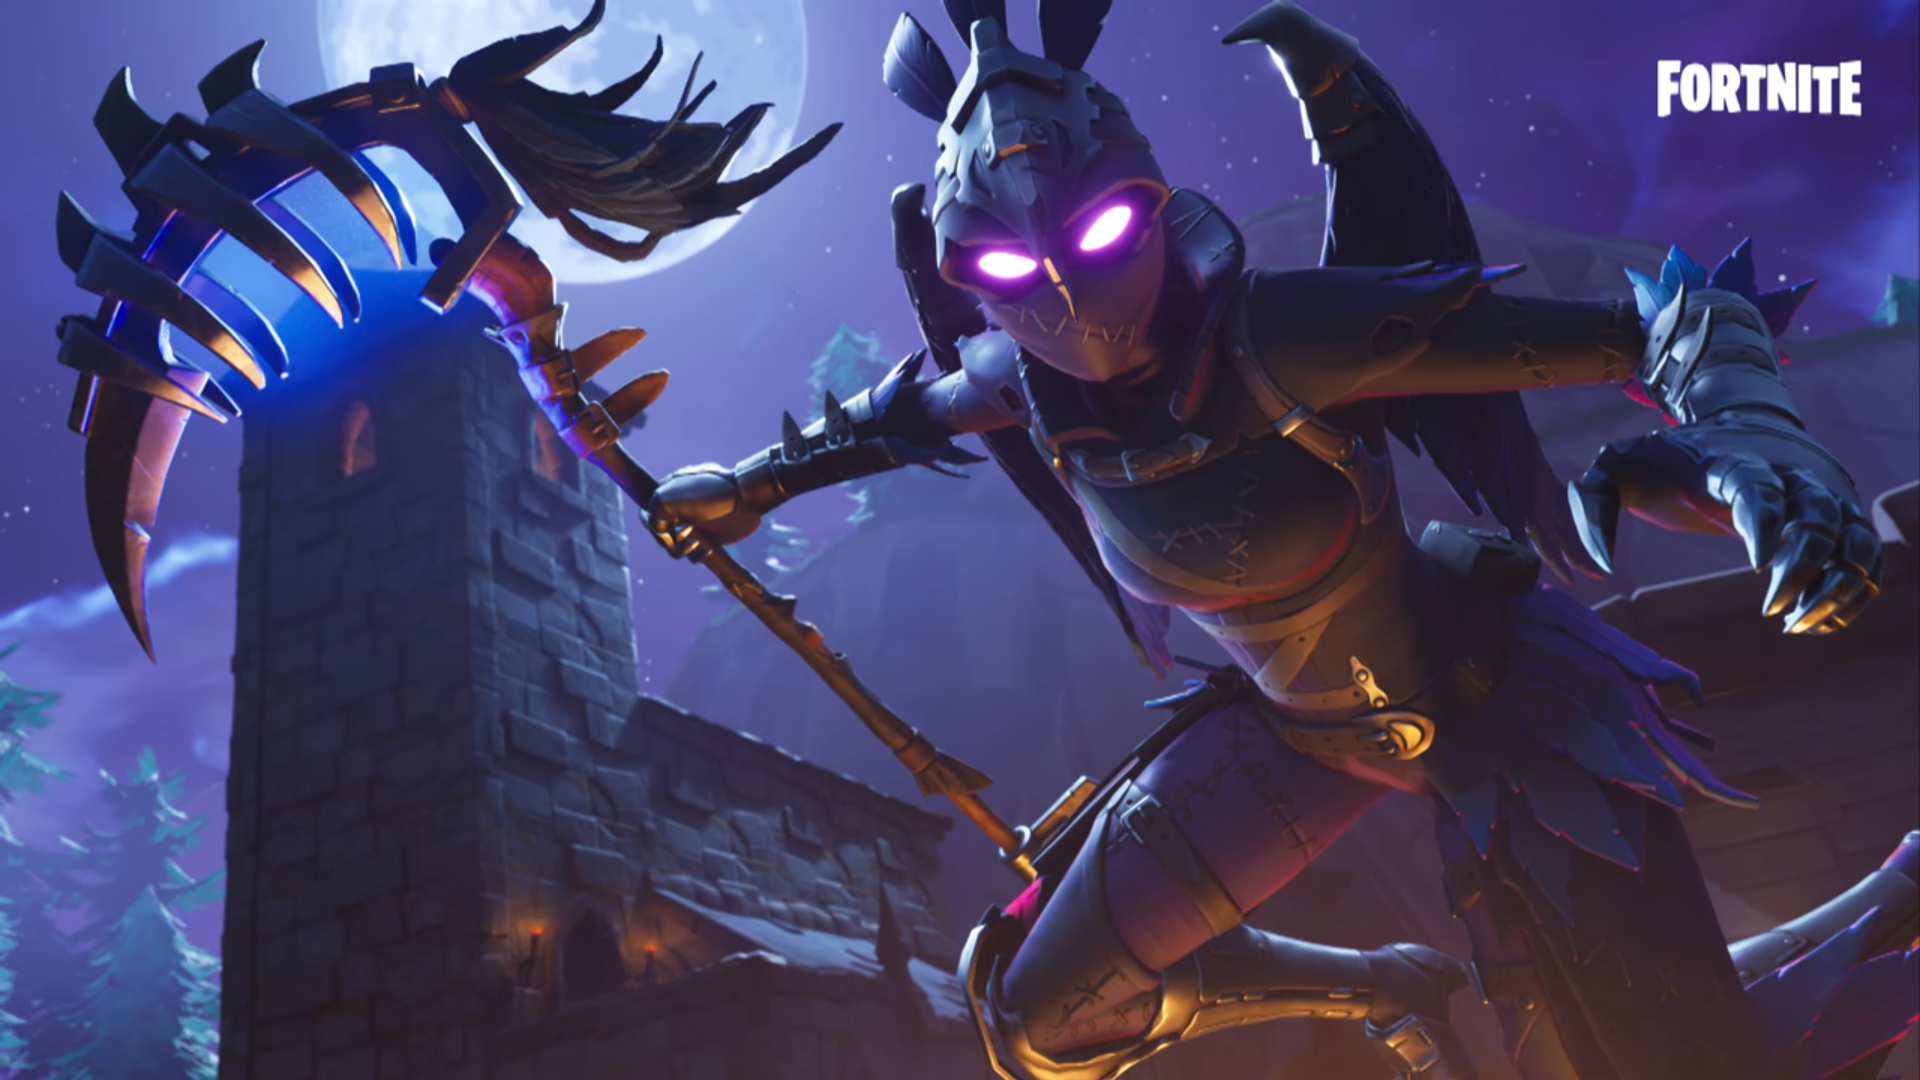 Fortnite Ravage Hd Wallpaper Background Image 1920x1080 Id